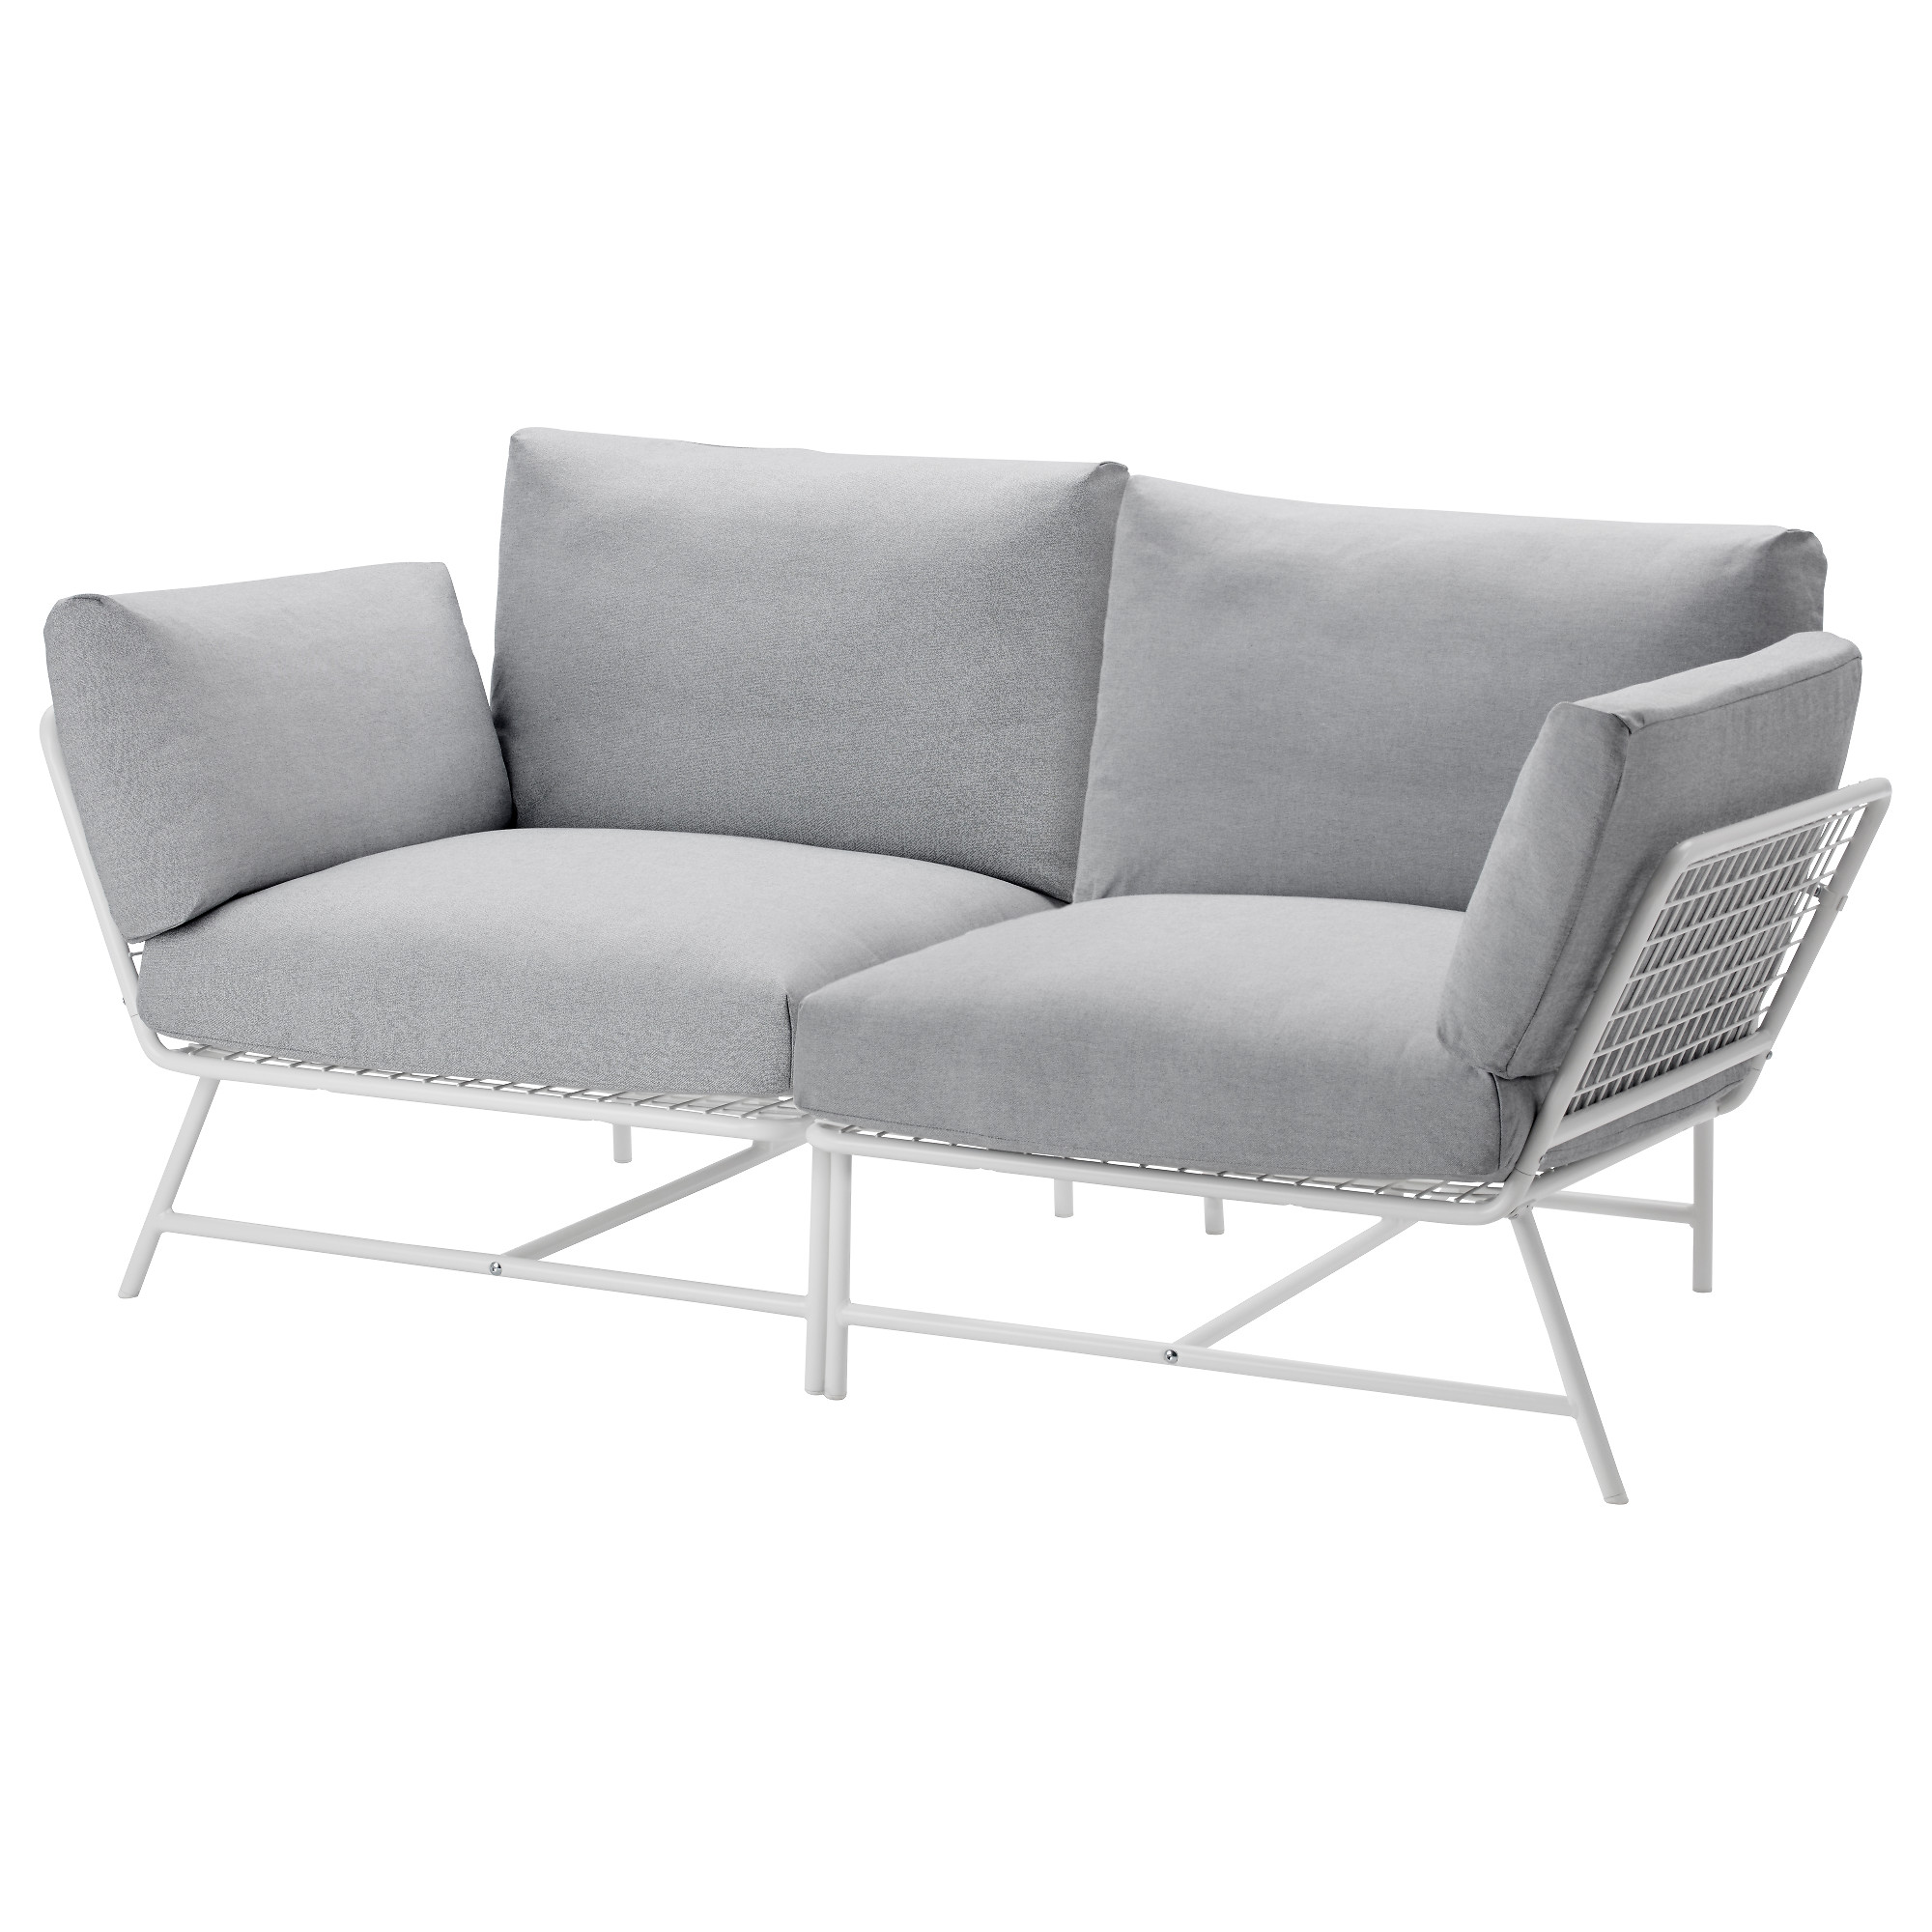 Fabric Sofas Modern Contemporary IKEA - Love seat and sofa